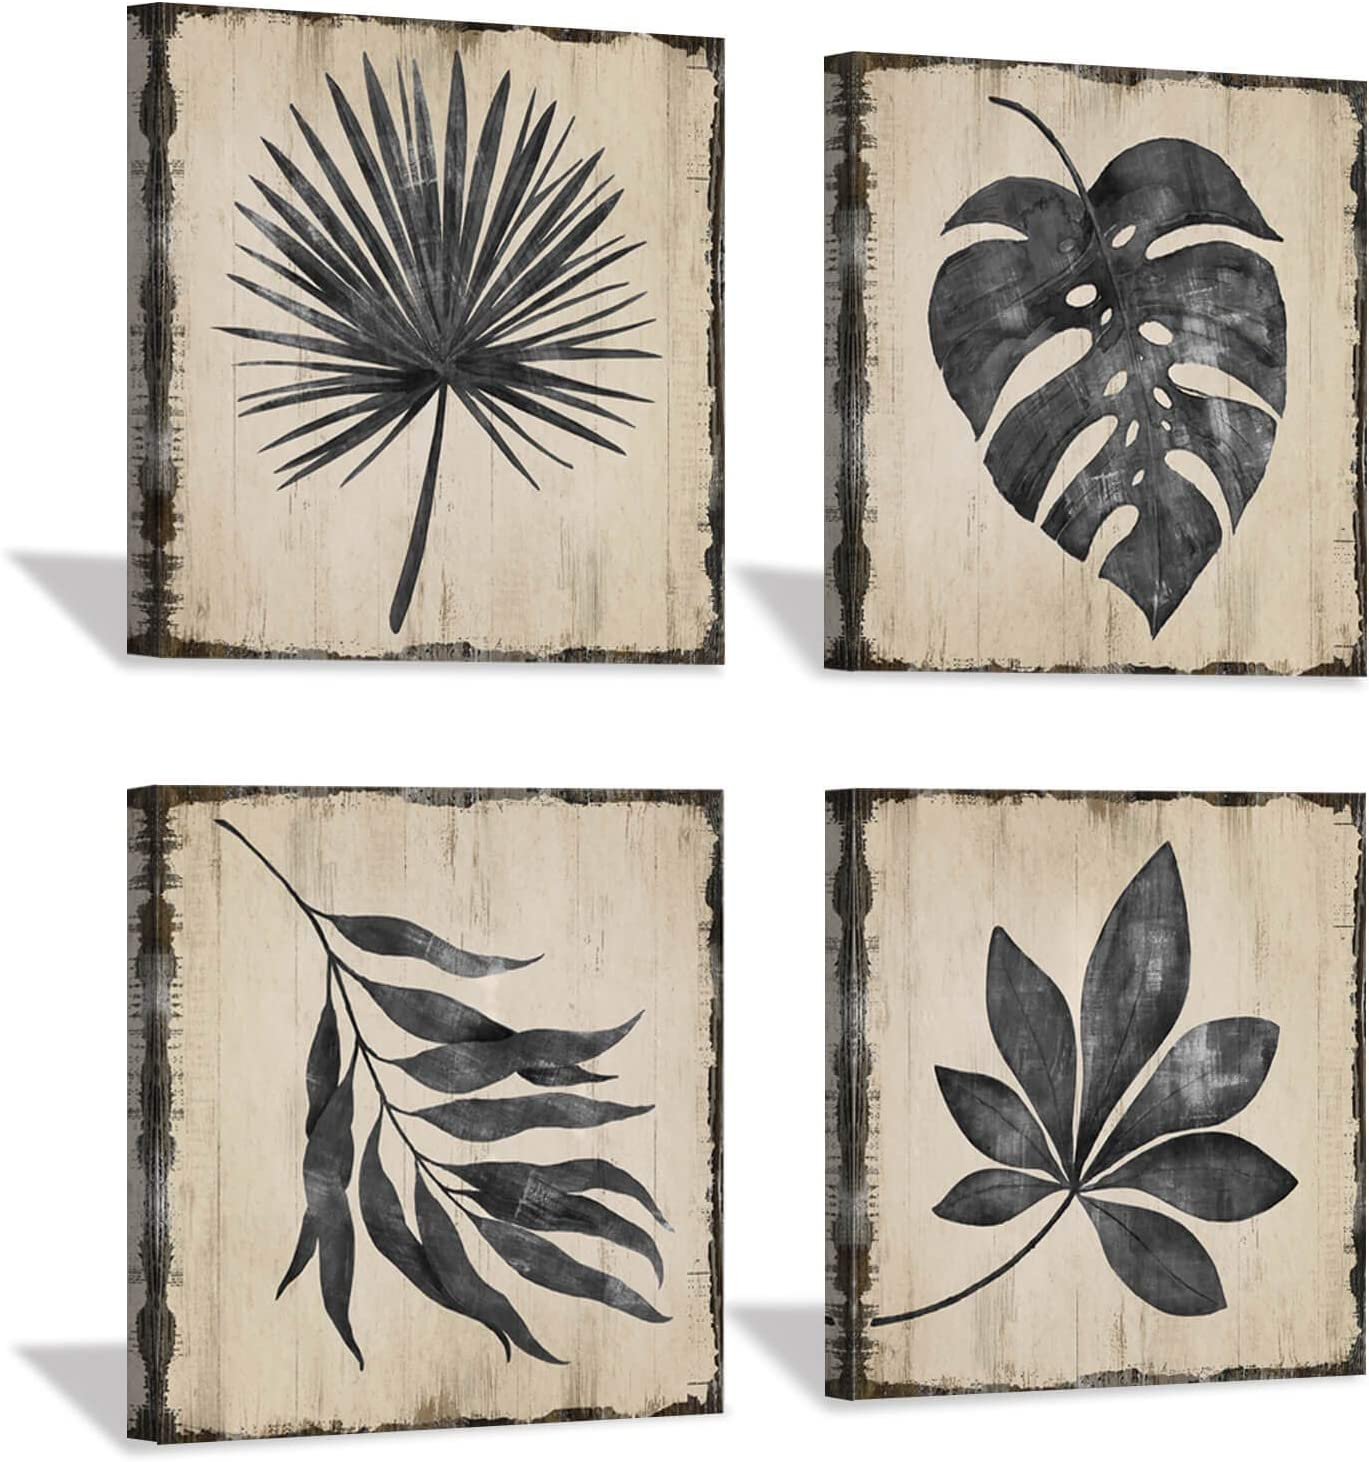 """Bathroom Wall Art Leaves Grey: Rustic Wooden Texture Style Background Tropical Botanical Artwork Print on Canvas for Home Decor (12"""" x 12"""" x 4 Panels)"""